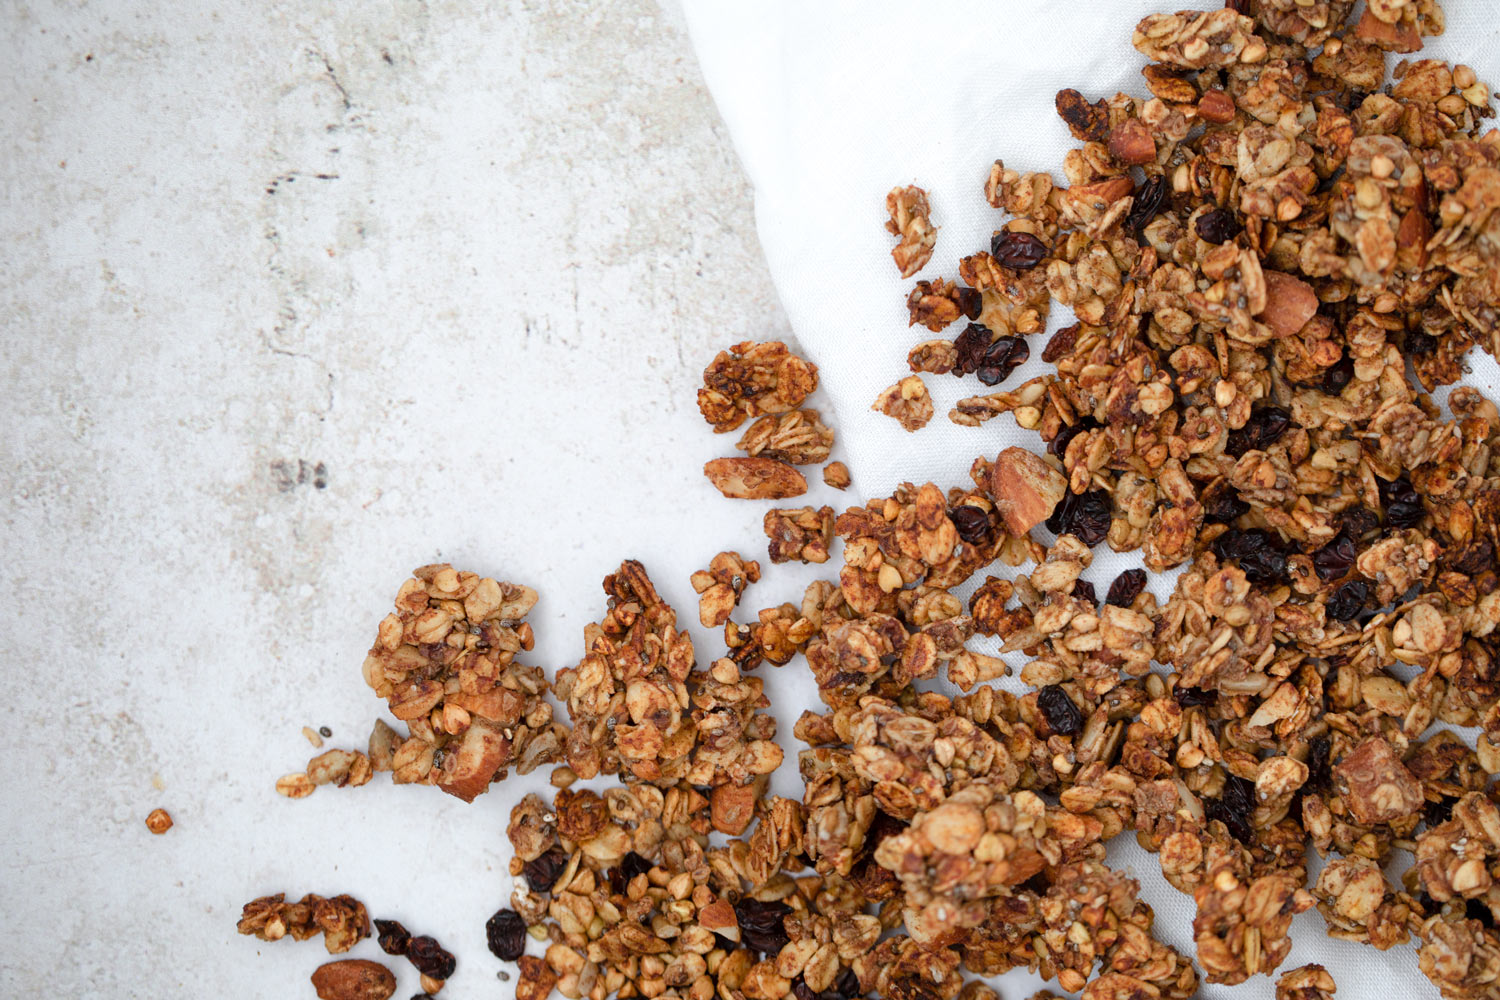 Chuncky Granola with Sunflower Seeds, Oats, Dates and Nut Butter